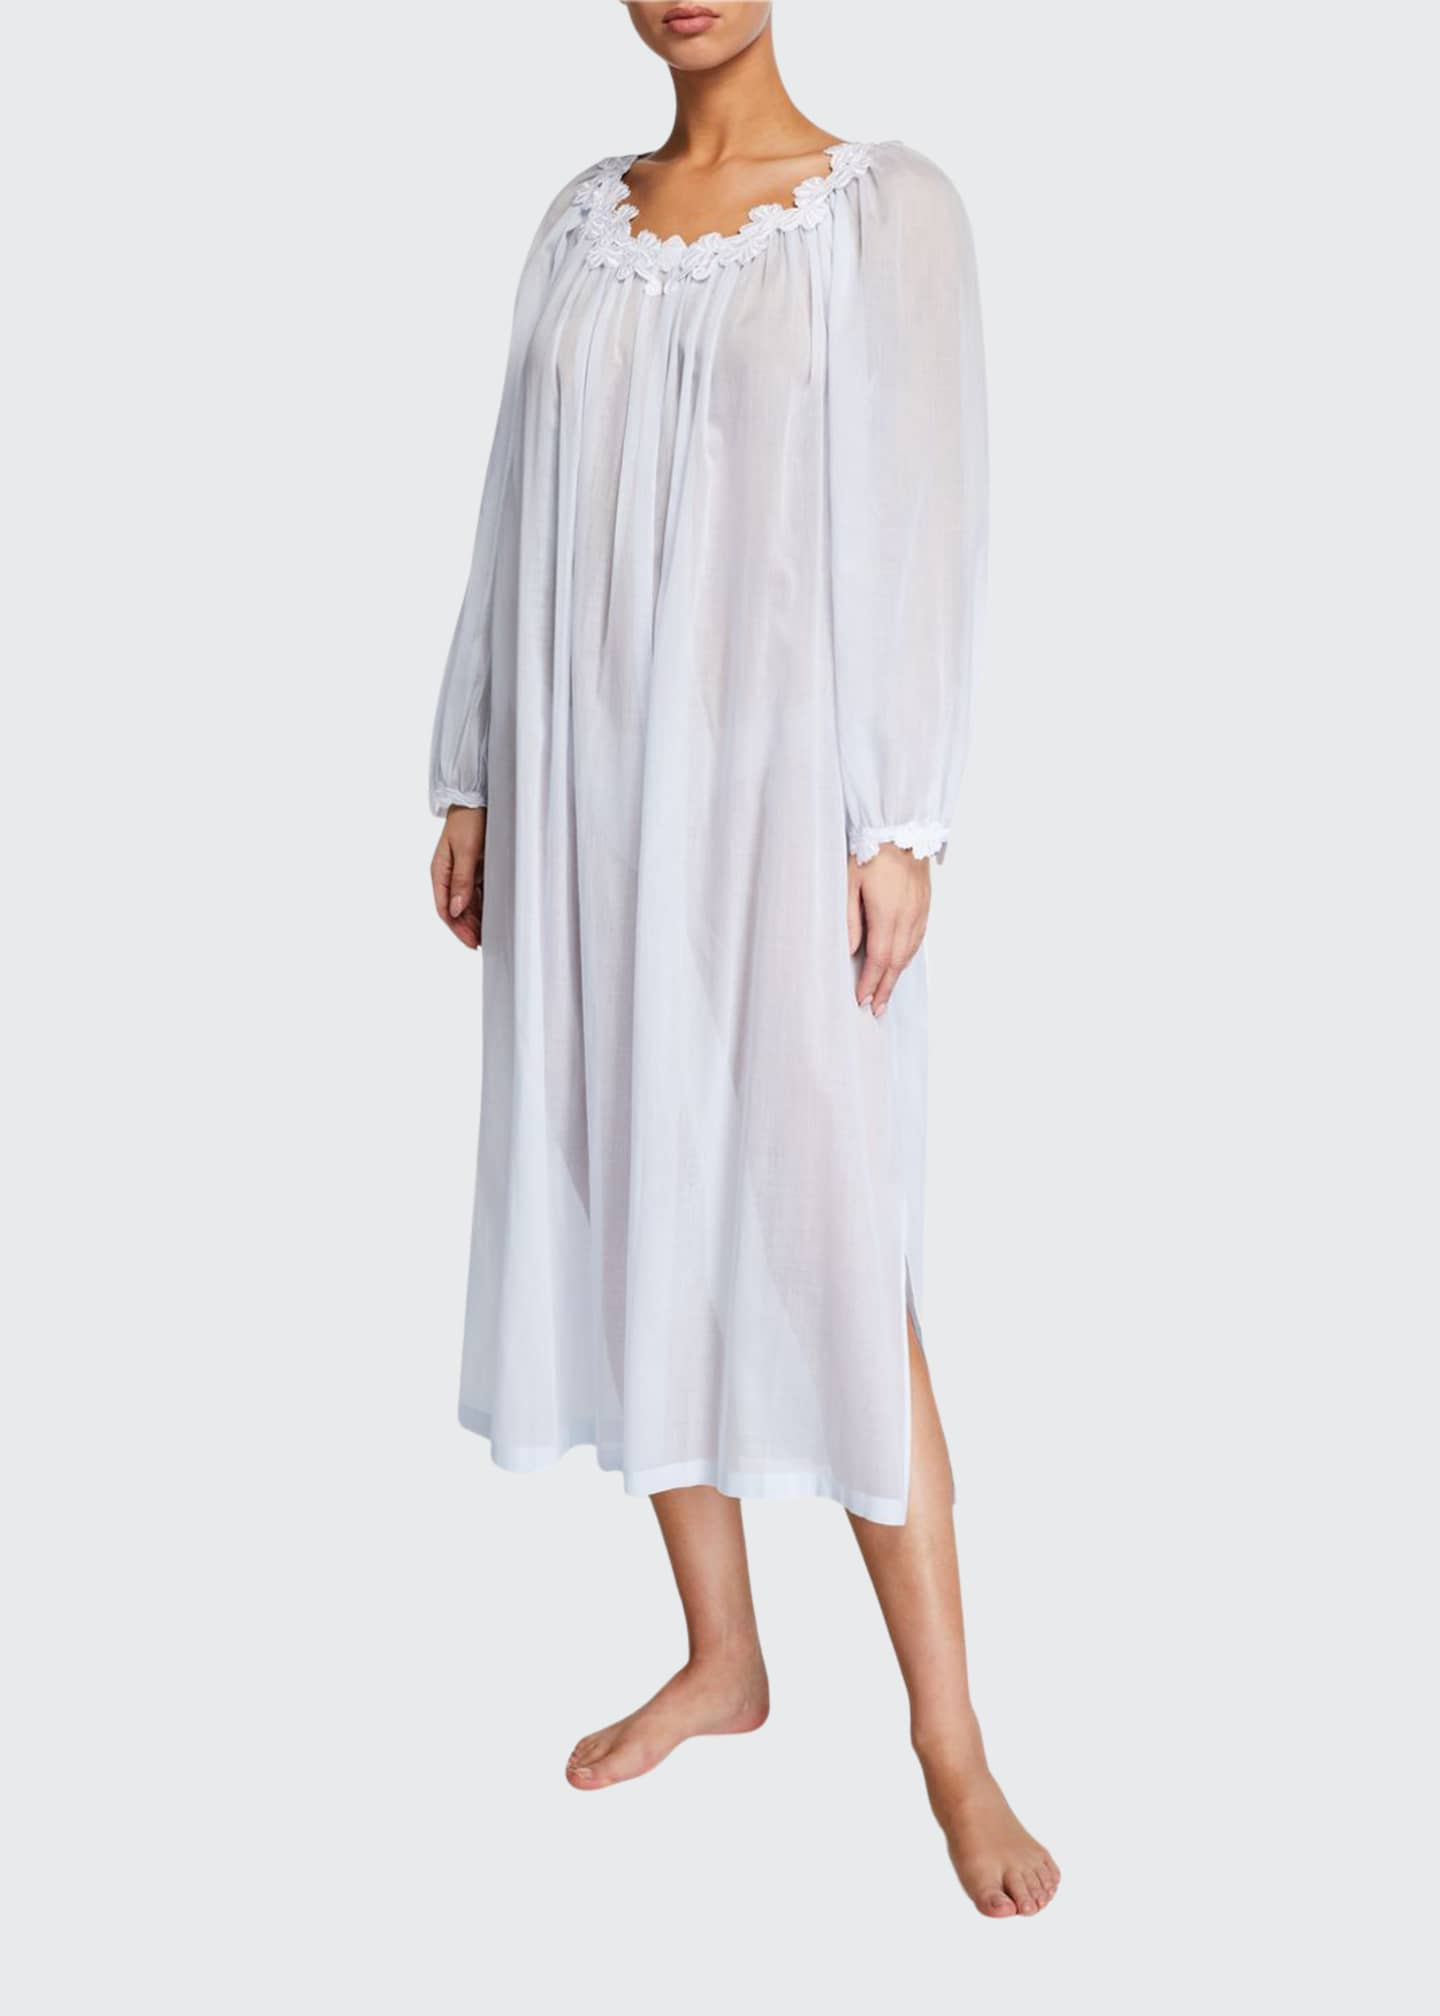 Celestine Palace Scoop-Neck Long-Sleeve Lace-Trim Nightgown